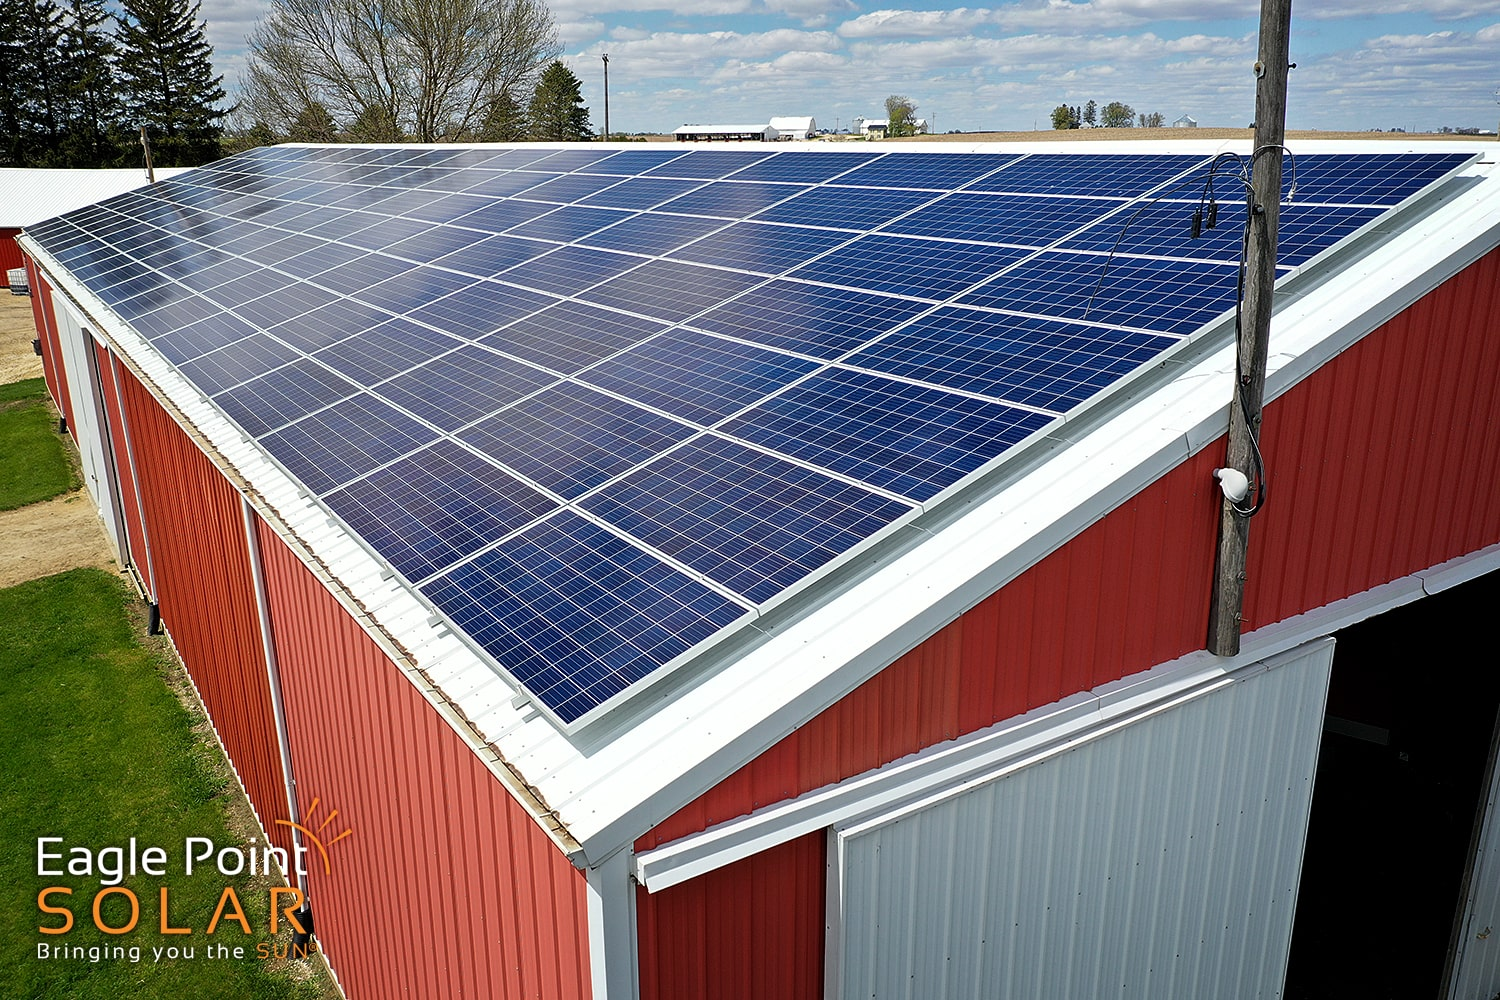 Photo of a agricultural roof mounted solar array